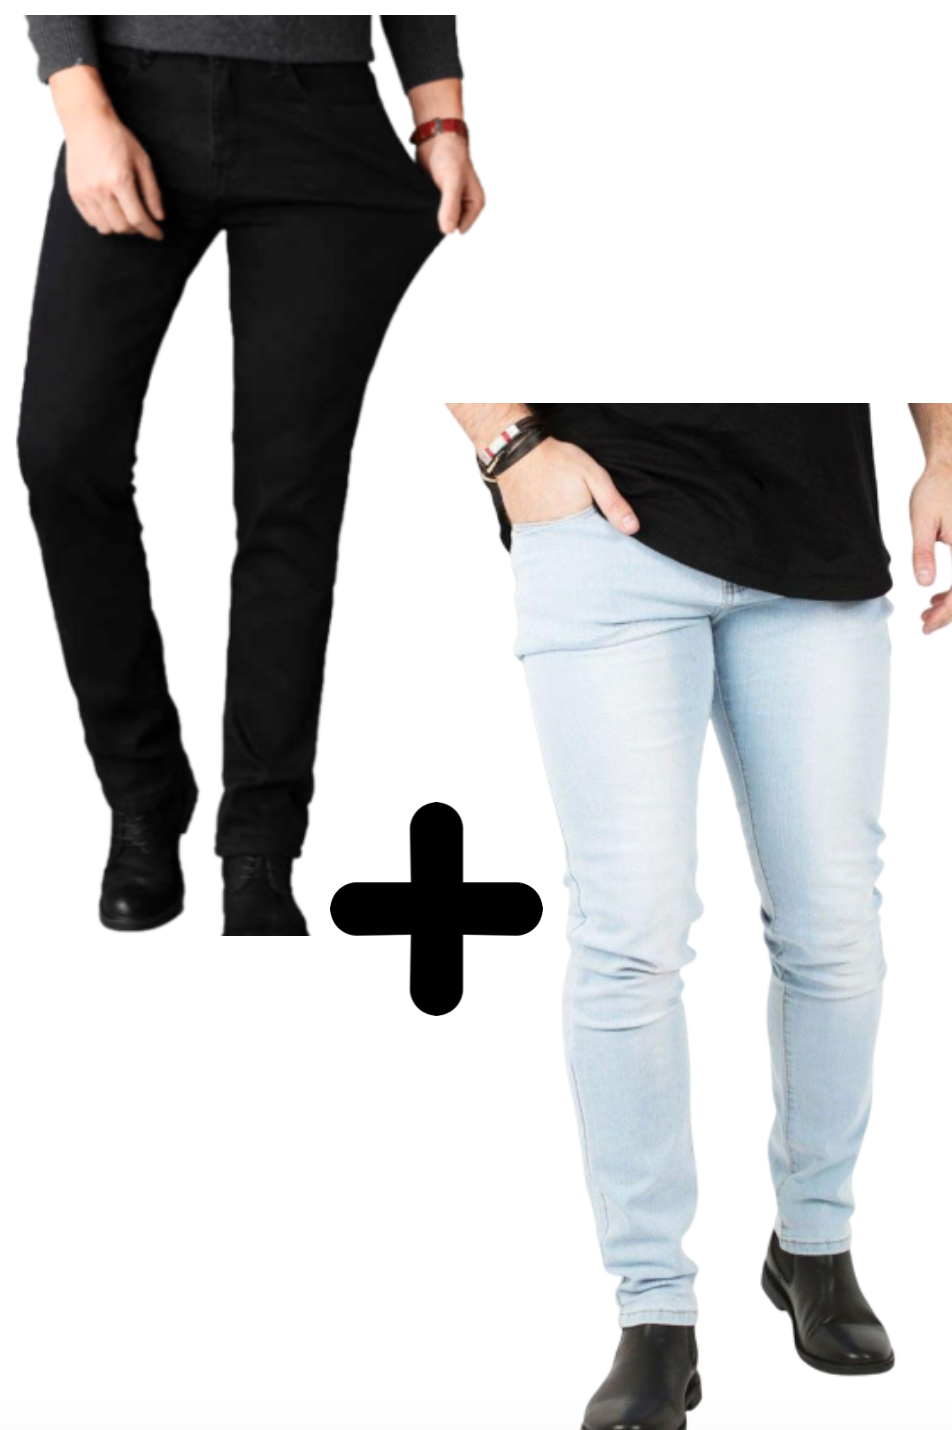 2 x Die Perfekte Jeans: Light Blue + Black